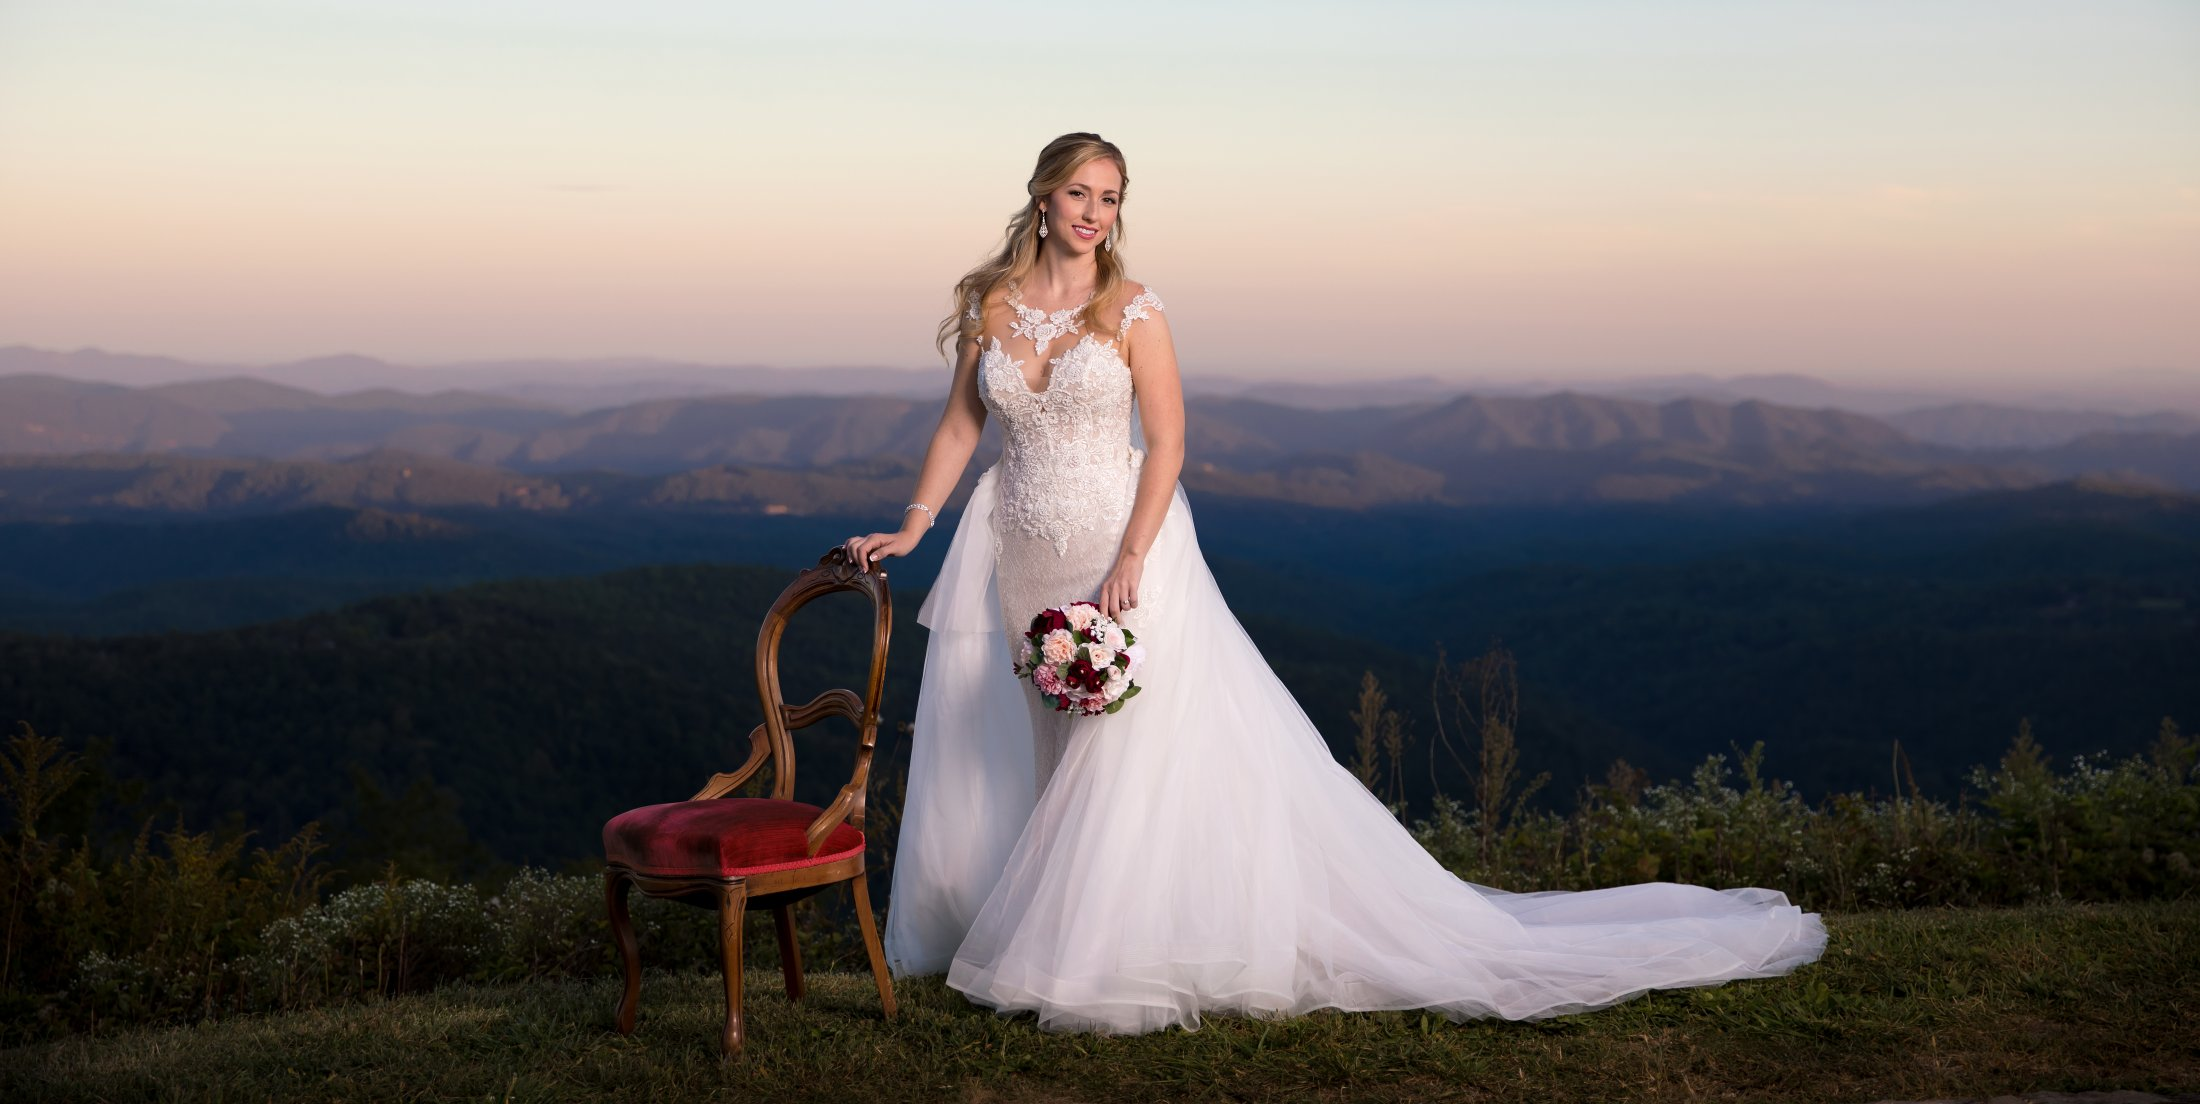 Olivia_Kelly_Bridal_054billboard.jpg